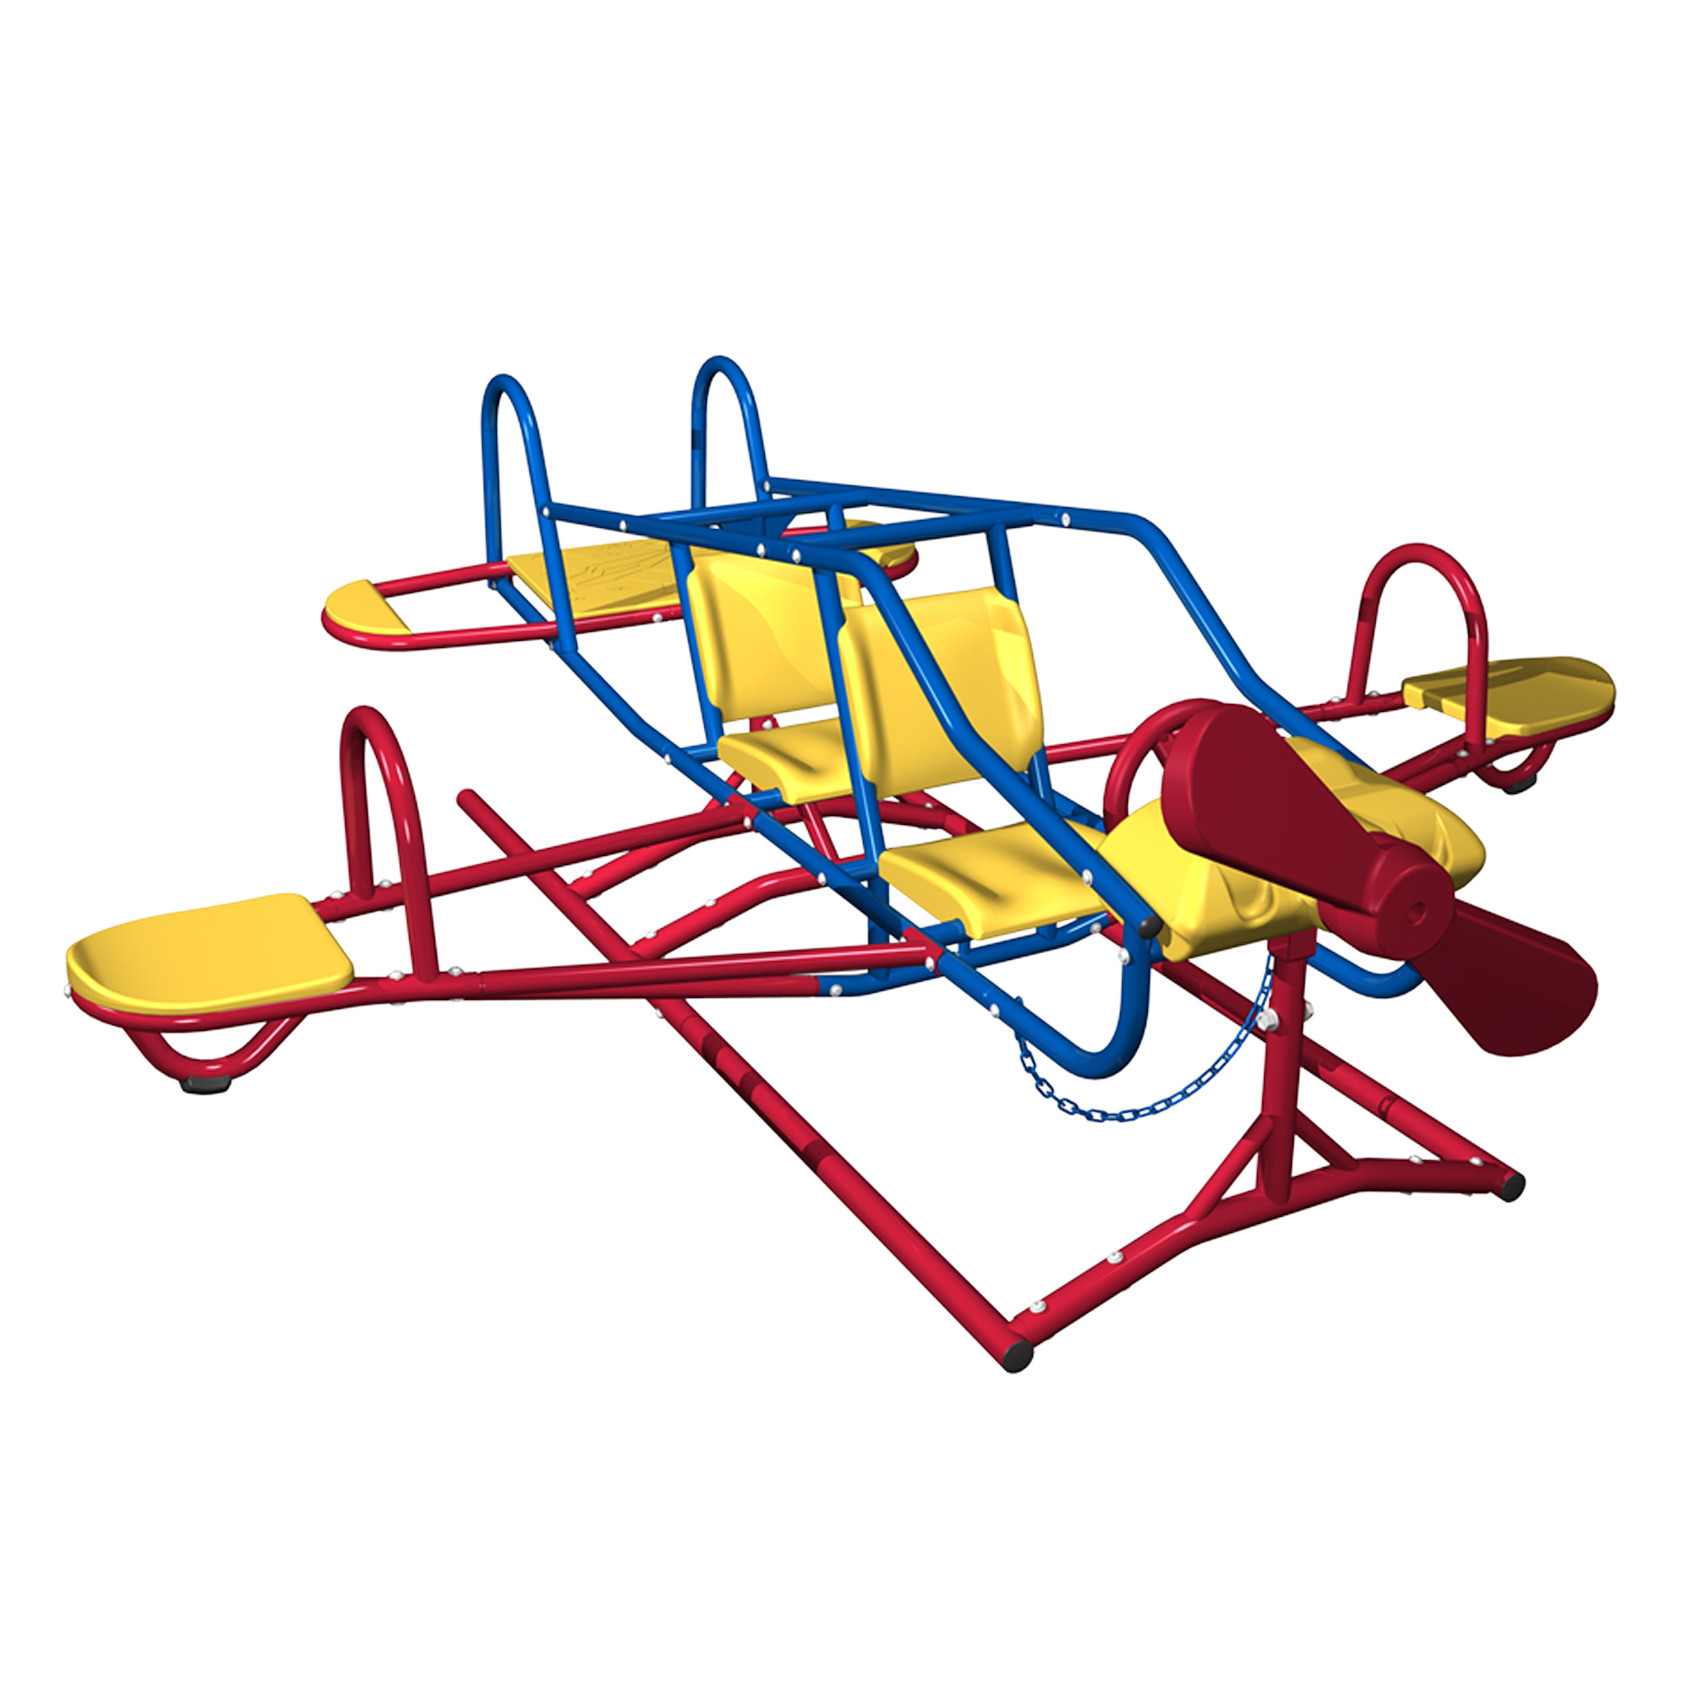 Teeter Totter Daycare | The Teeter Totter | Teeter Totter